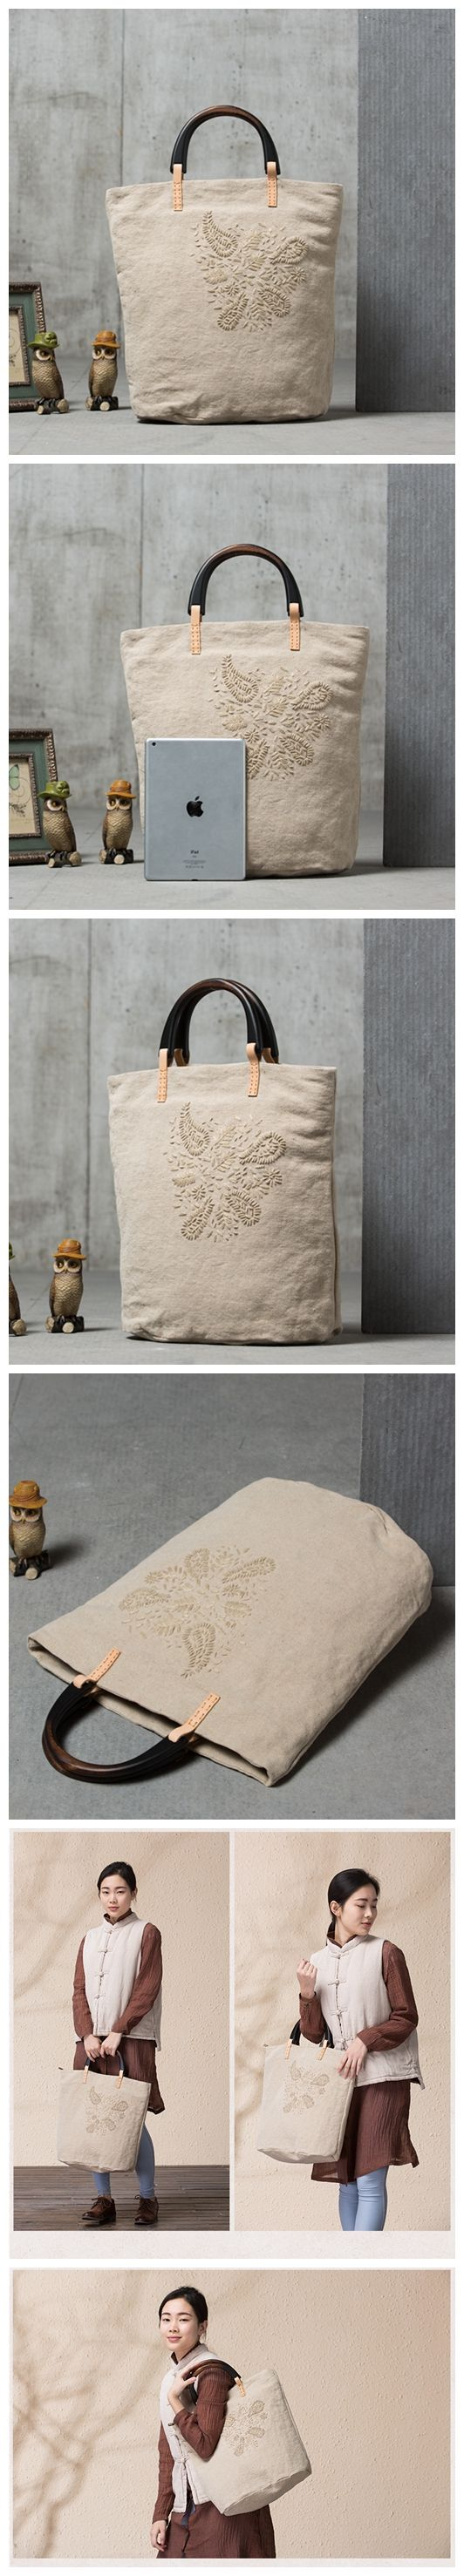 Original Cotton and Linen Tote Bag Handbag for Women Vintage Shoulder Bag Hand Embroidery YY02 -------------------------------- - Cotton and Linen, Wooden Handle - Cotton lining - Inside one zipper po